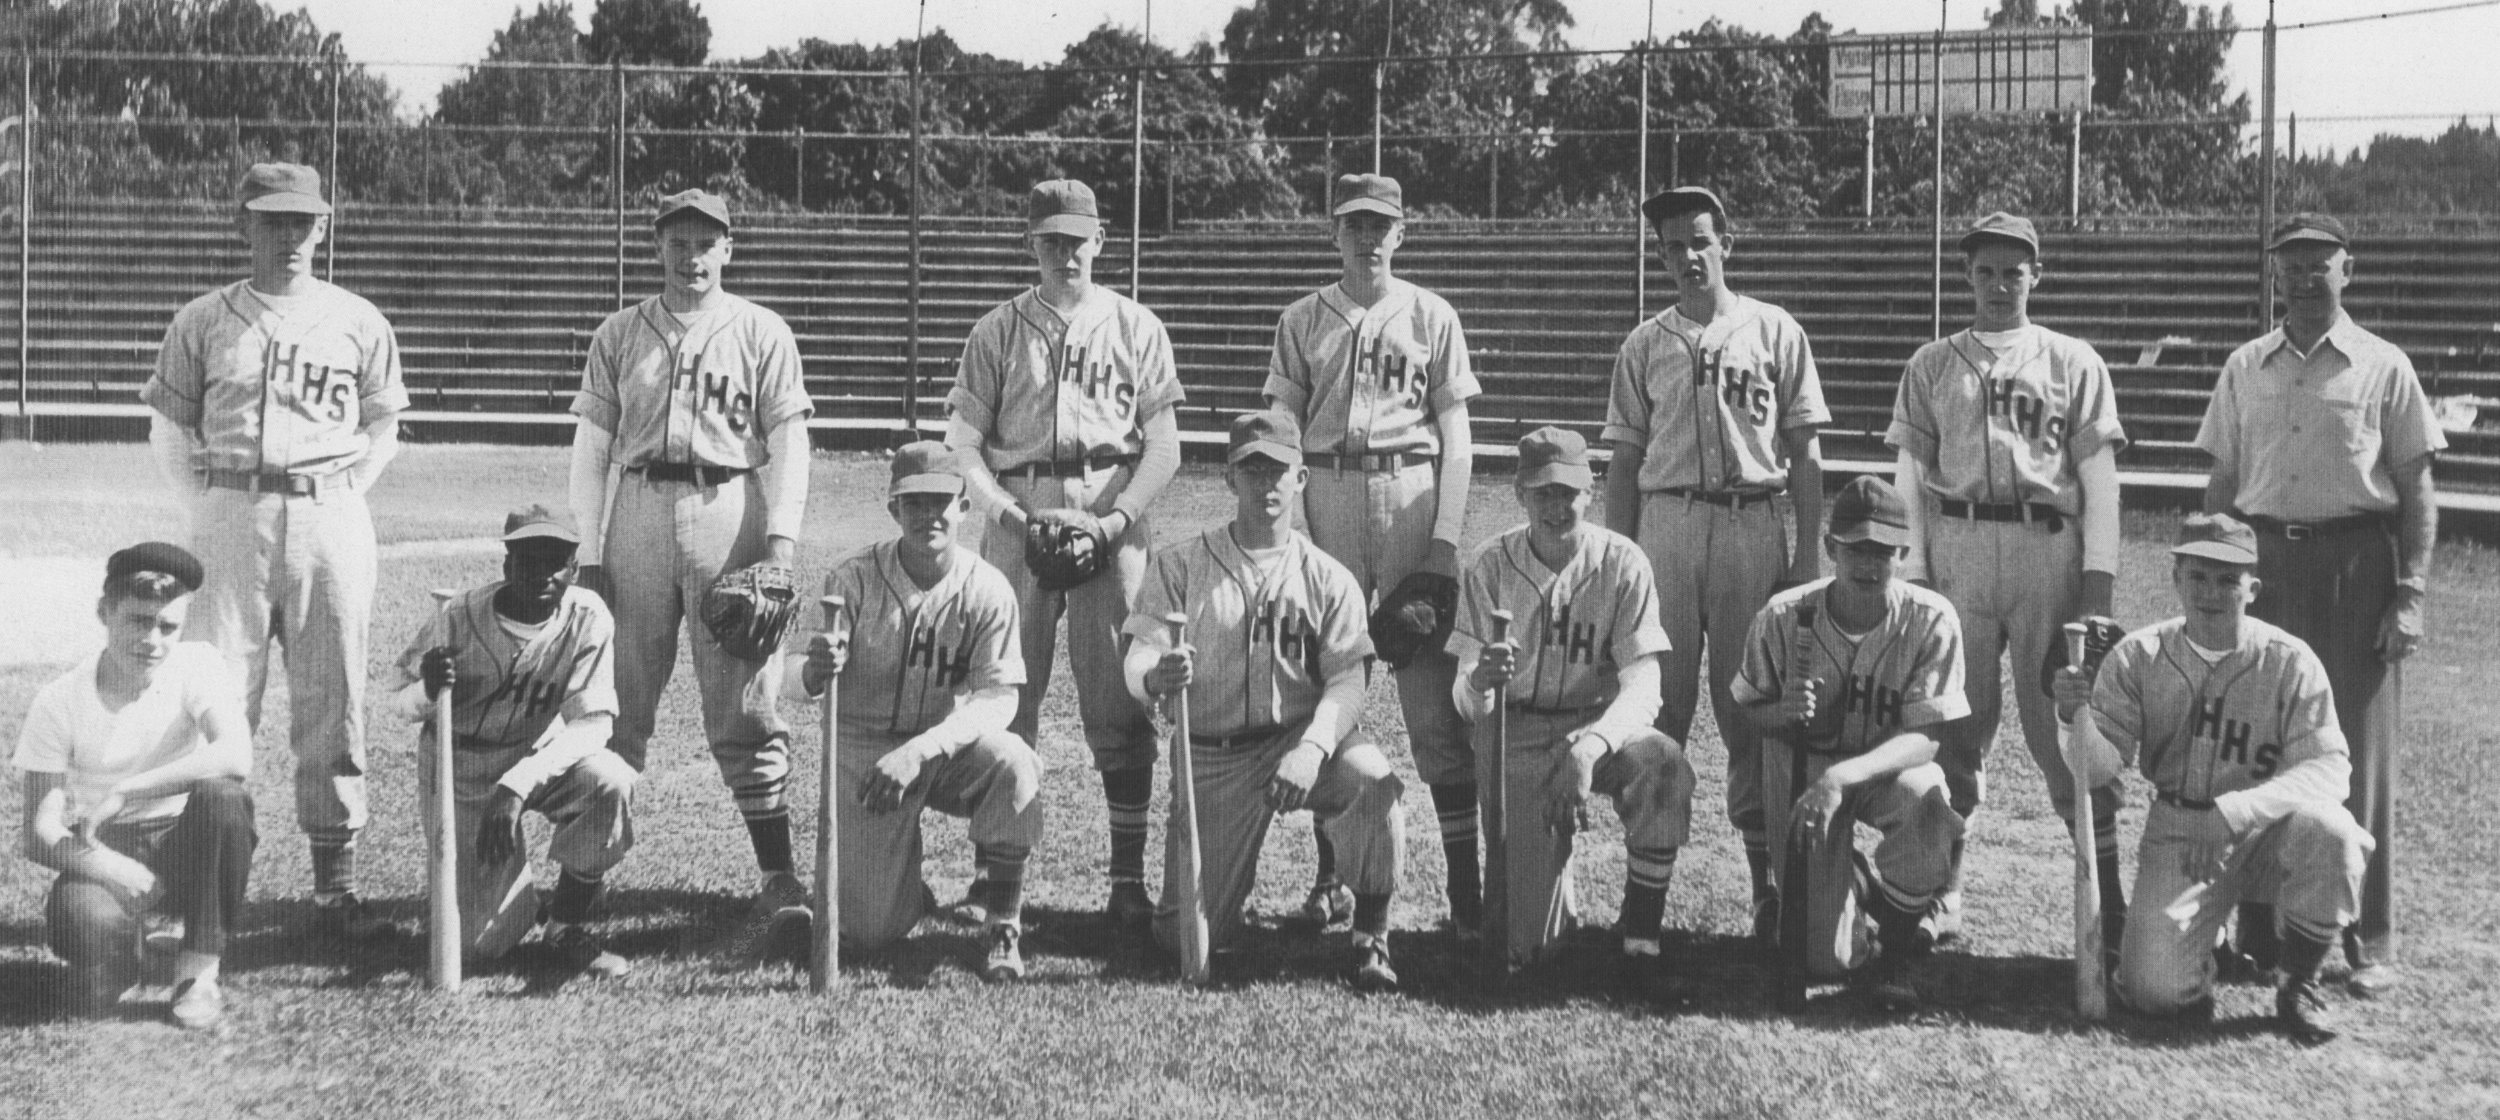 Hudson High Bluehawks circa 1948. In back row, third from left is Red Sheffer, and third from right is Bob Trowbridge.